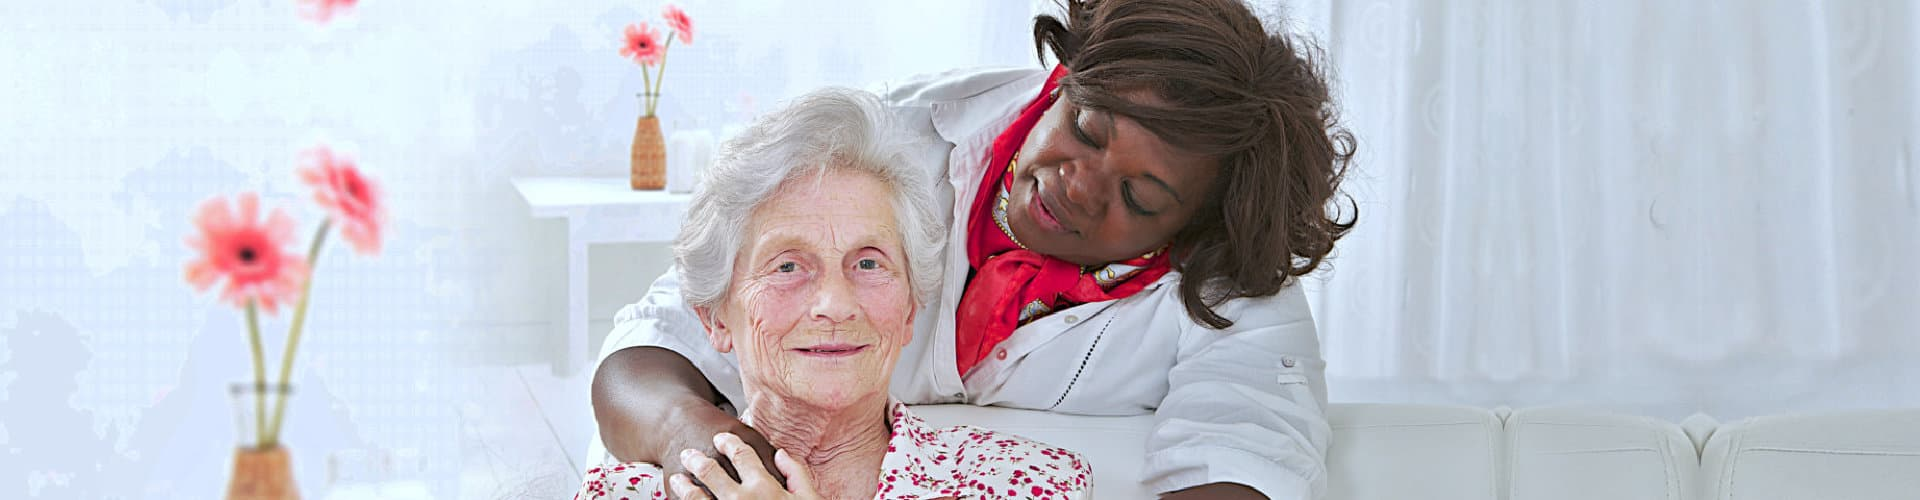 old lady smiling while her caregiver watching